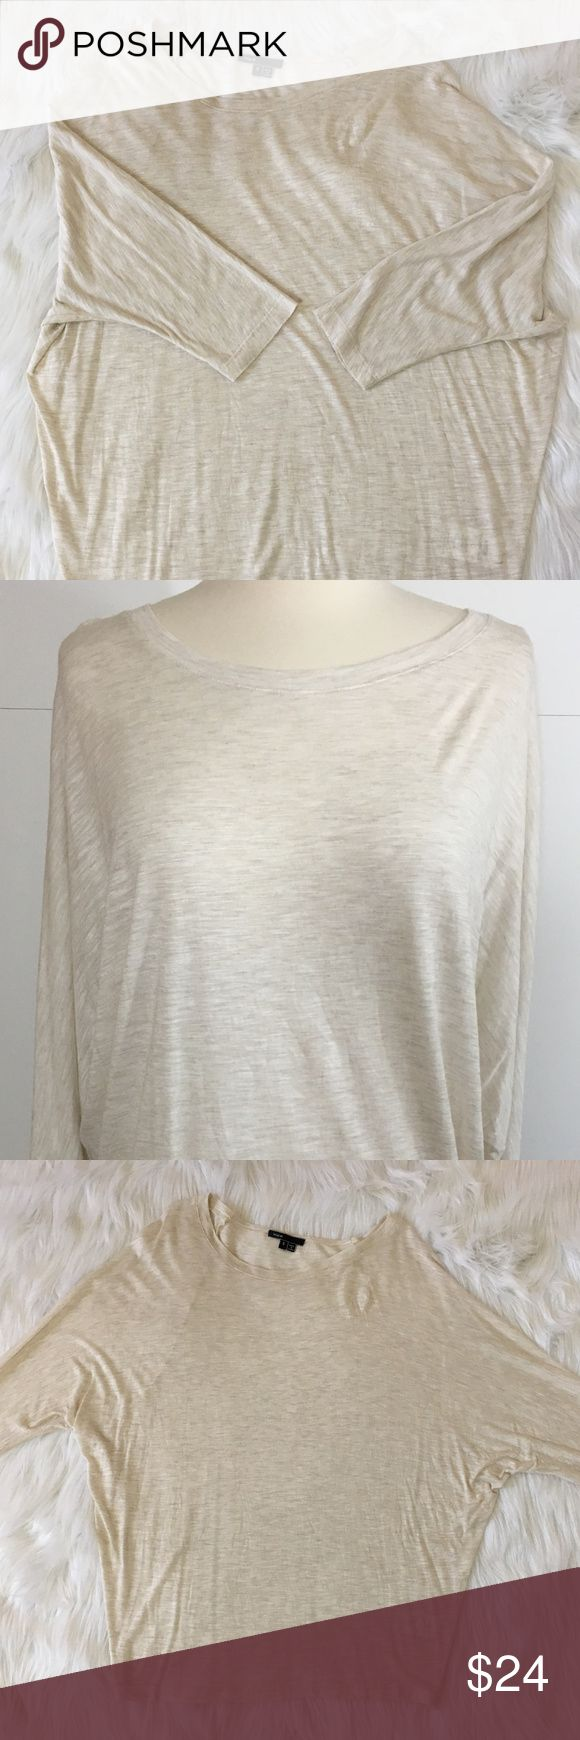 "Vince Dolman Batwing T Shirt Top Small Cream Vince Dolman Batwing T Shirt Top Size: Small Approximate measurements (laying flat):  28"" length  29"" from underarm to underarm  Color: Cream Condition: Excellent pre-owned condition Vince Tops Tees - Short Sleeve"